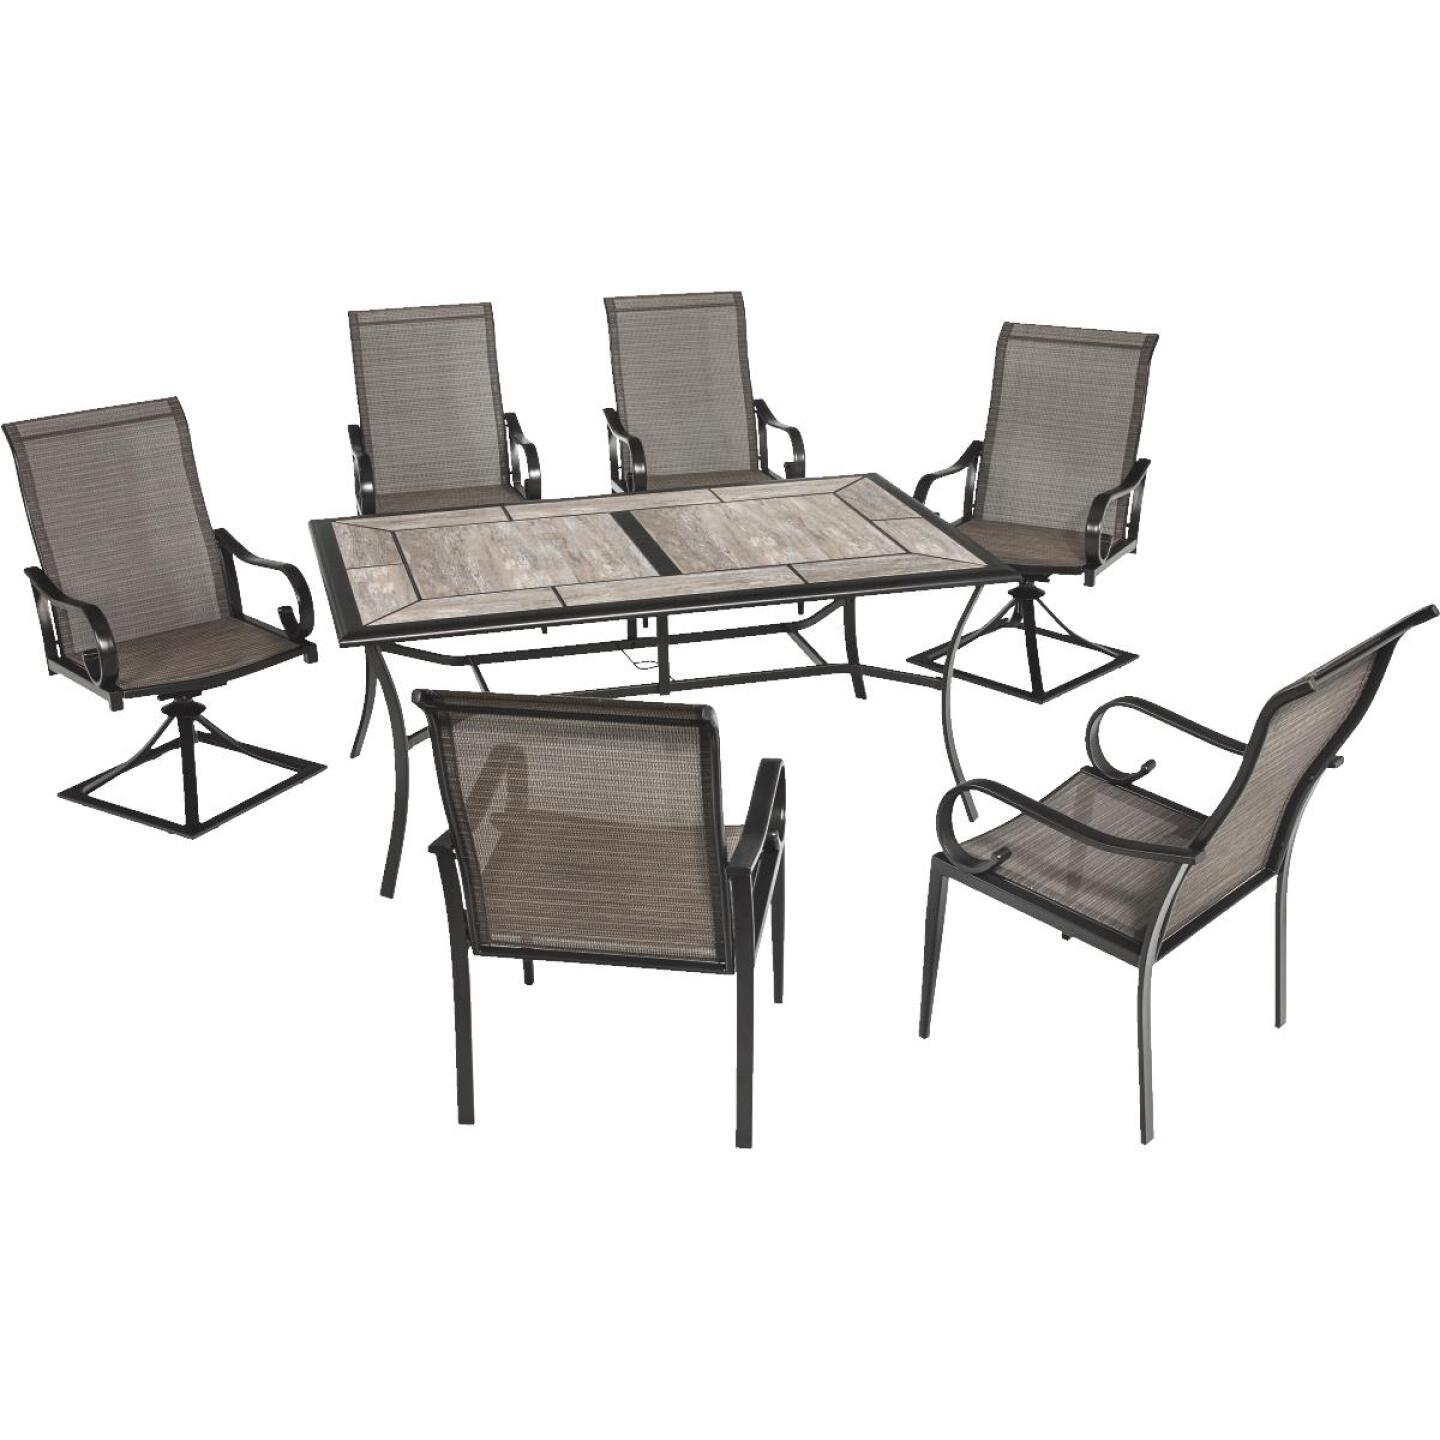 Outdoor Expressions Berkshire 7-Piece Dining Set Image 269